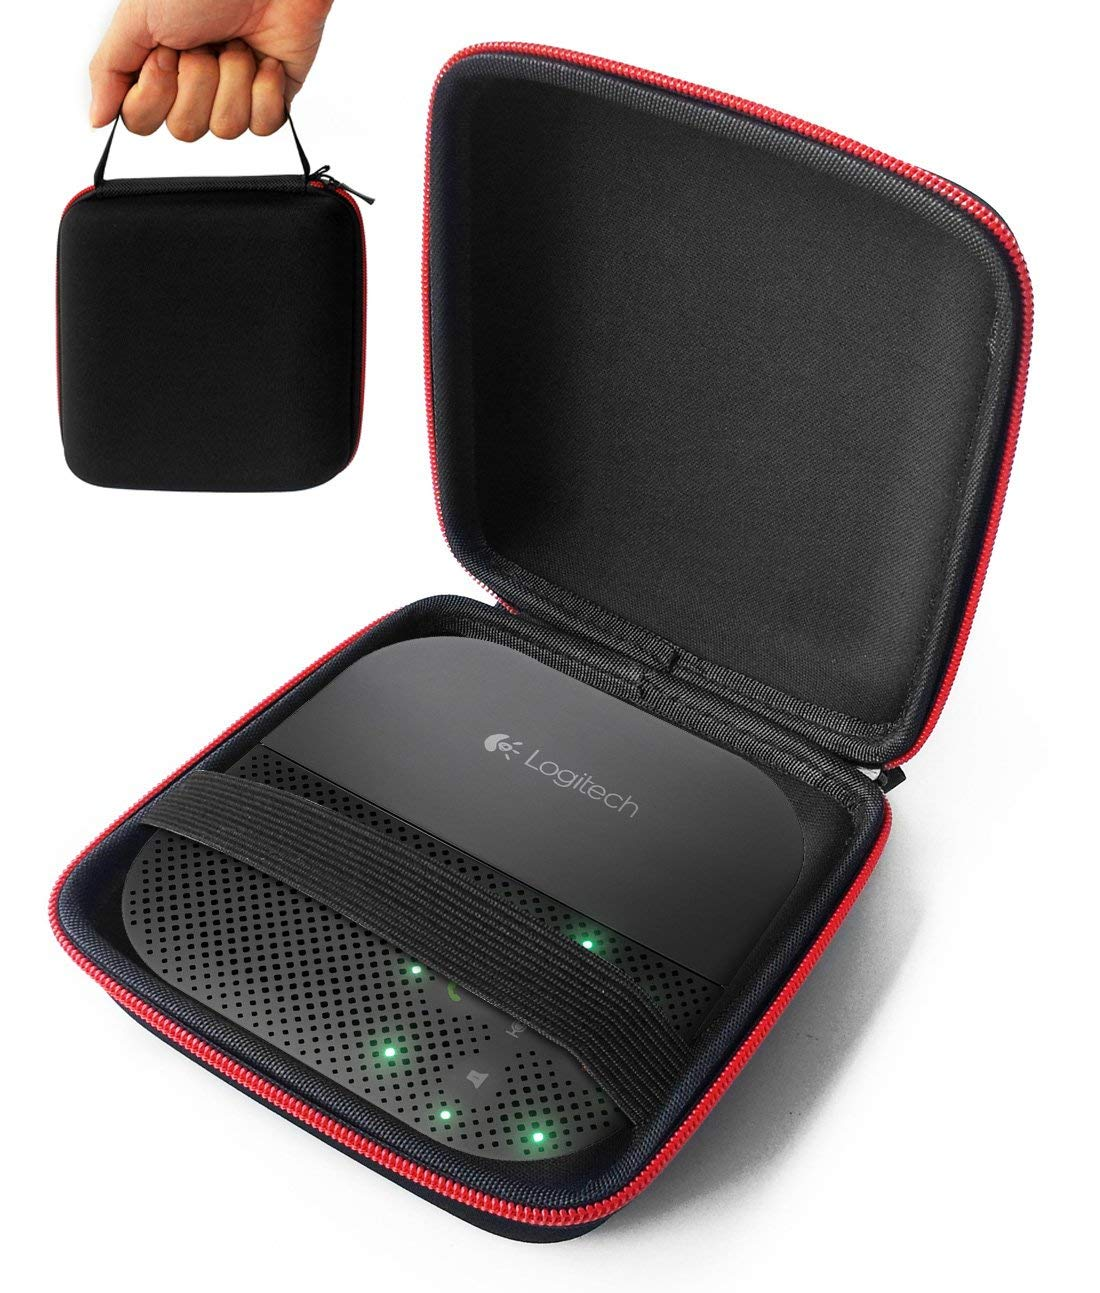 FitSand(TM) for Logitech P710e Mobile Conferencing Speakerphone Hard EVA Shockproof Carrying Case Storage Travel Case Bag Protective Pouch Box